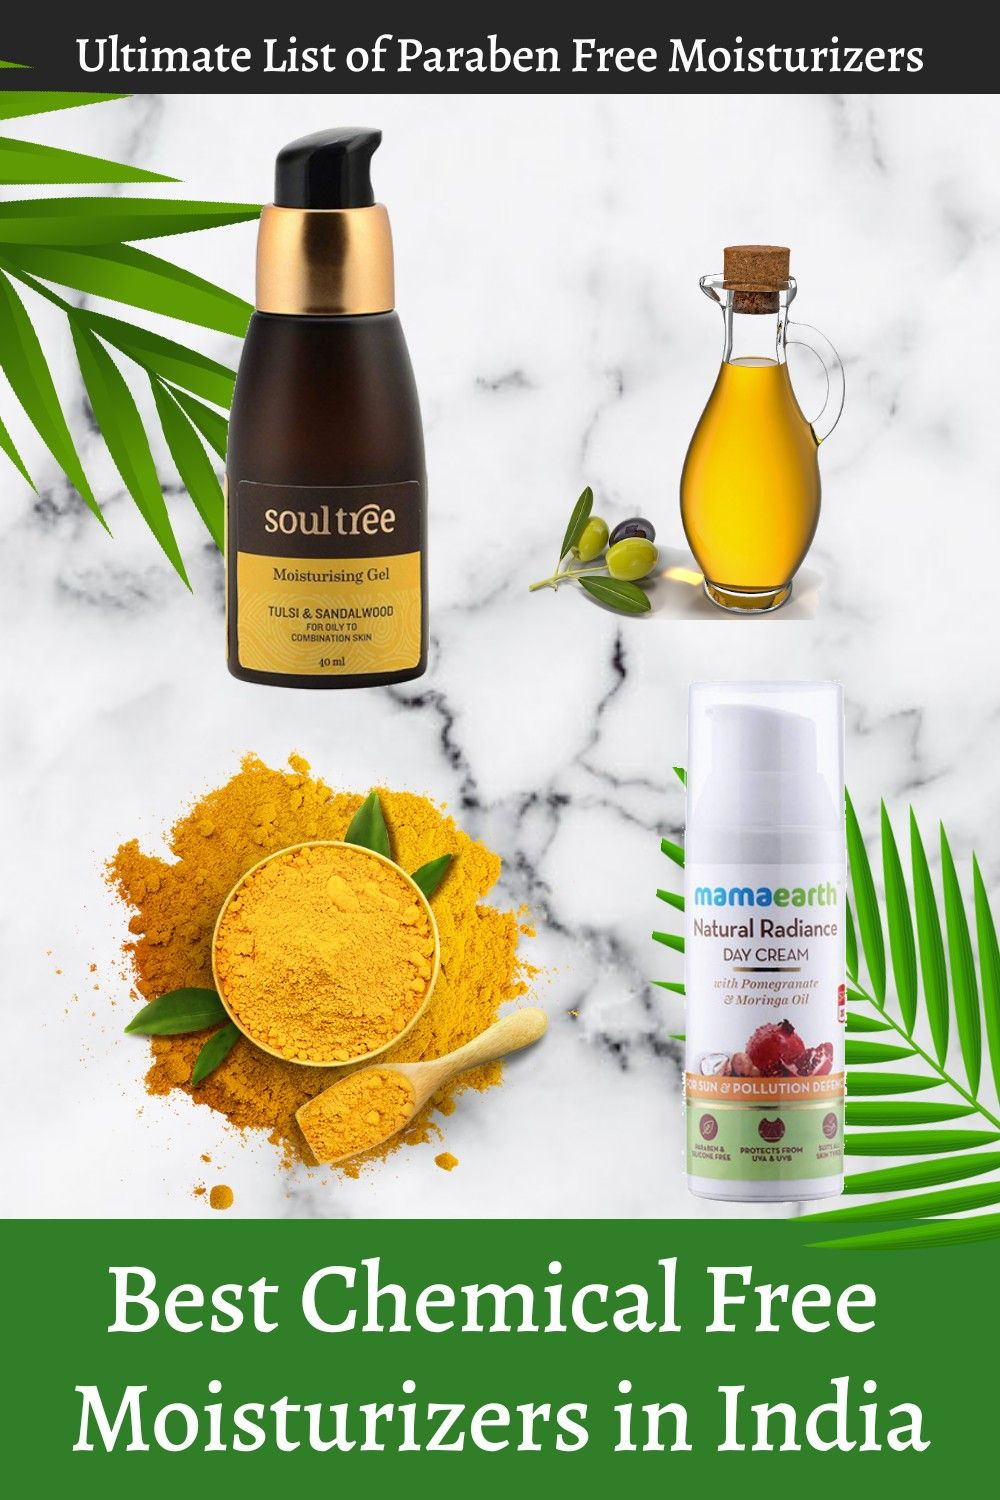 Best Chemical Free Moisturizers In India In 2020 Paraben Free Products Chemical Free Moisturizer Organic Skin Care Brands